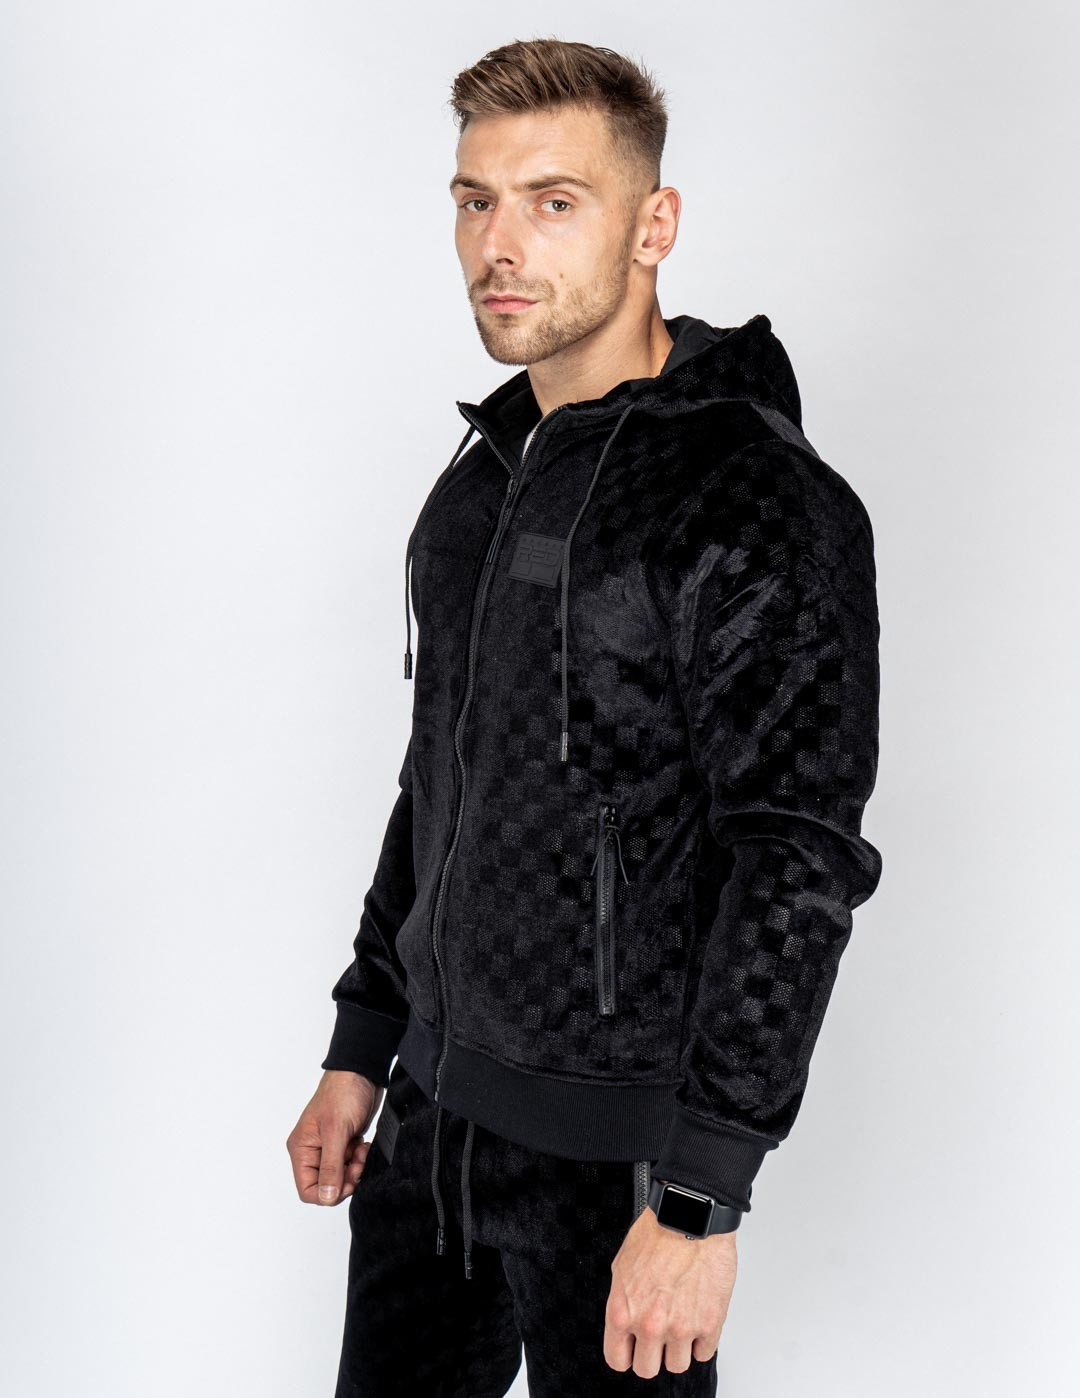 VELVET DOUBLE RED Exclusive Series All Black Tracksuit